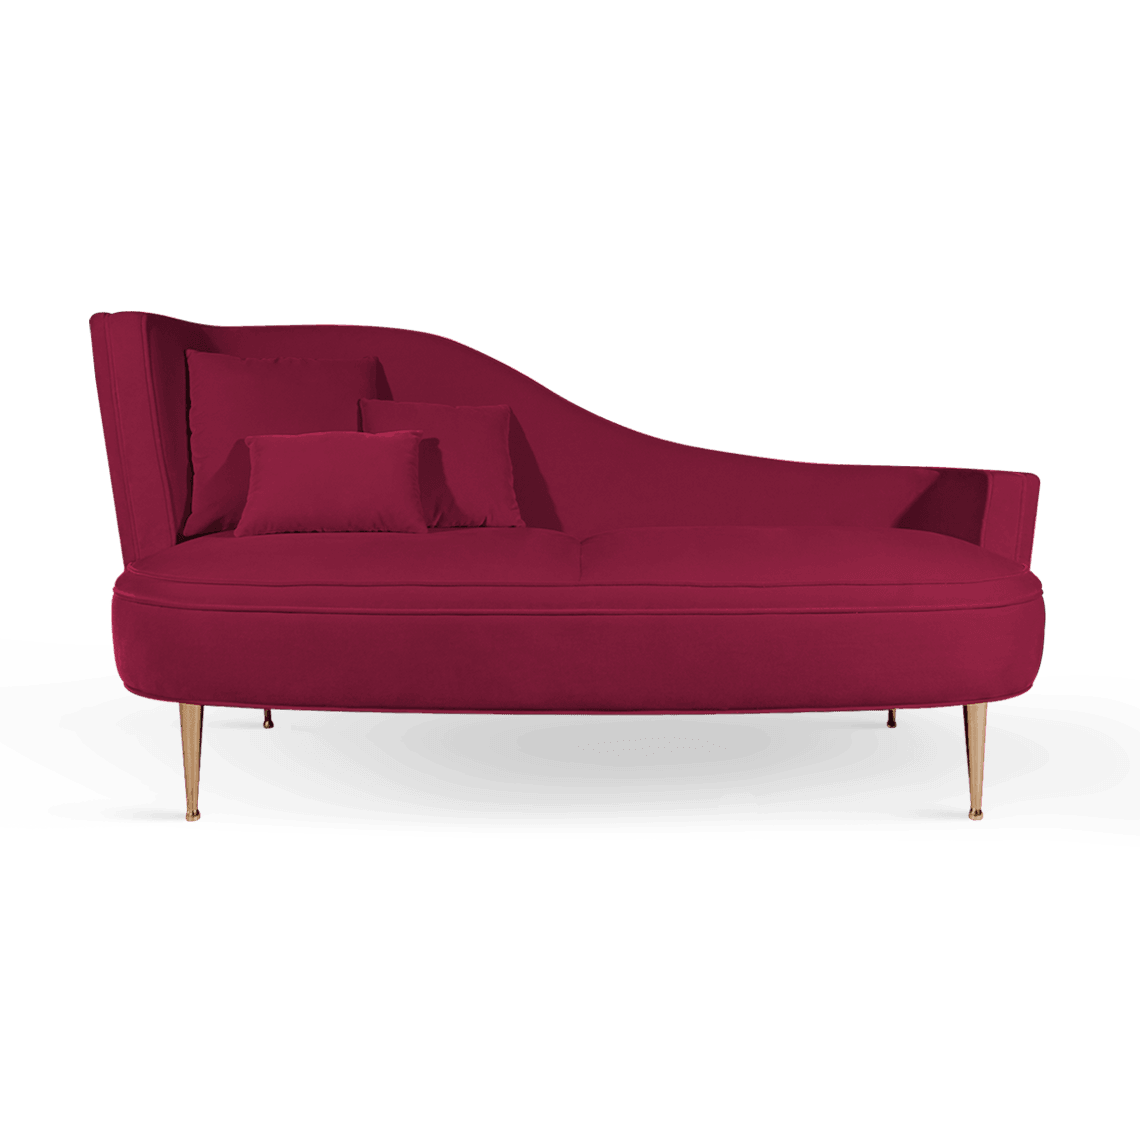 Martine Mid-Century Modern Love Seat in raspberry cotton velvet